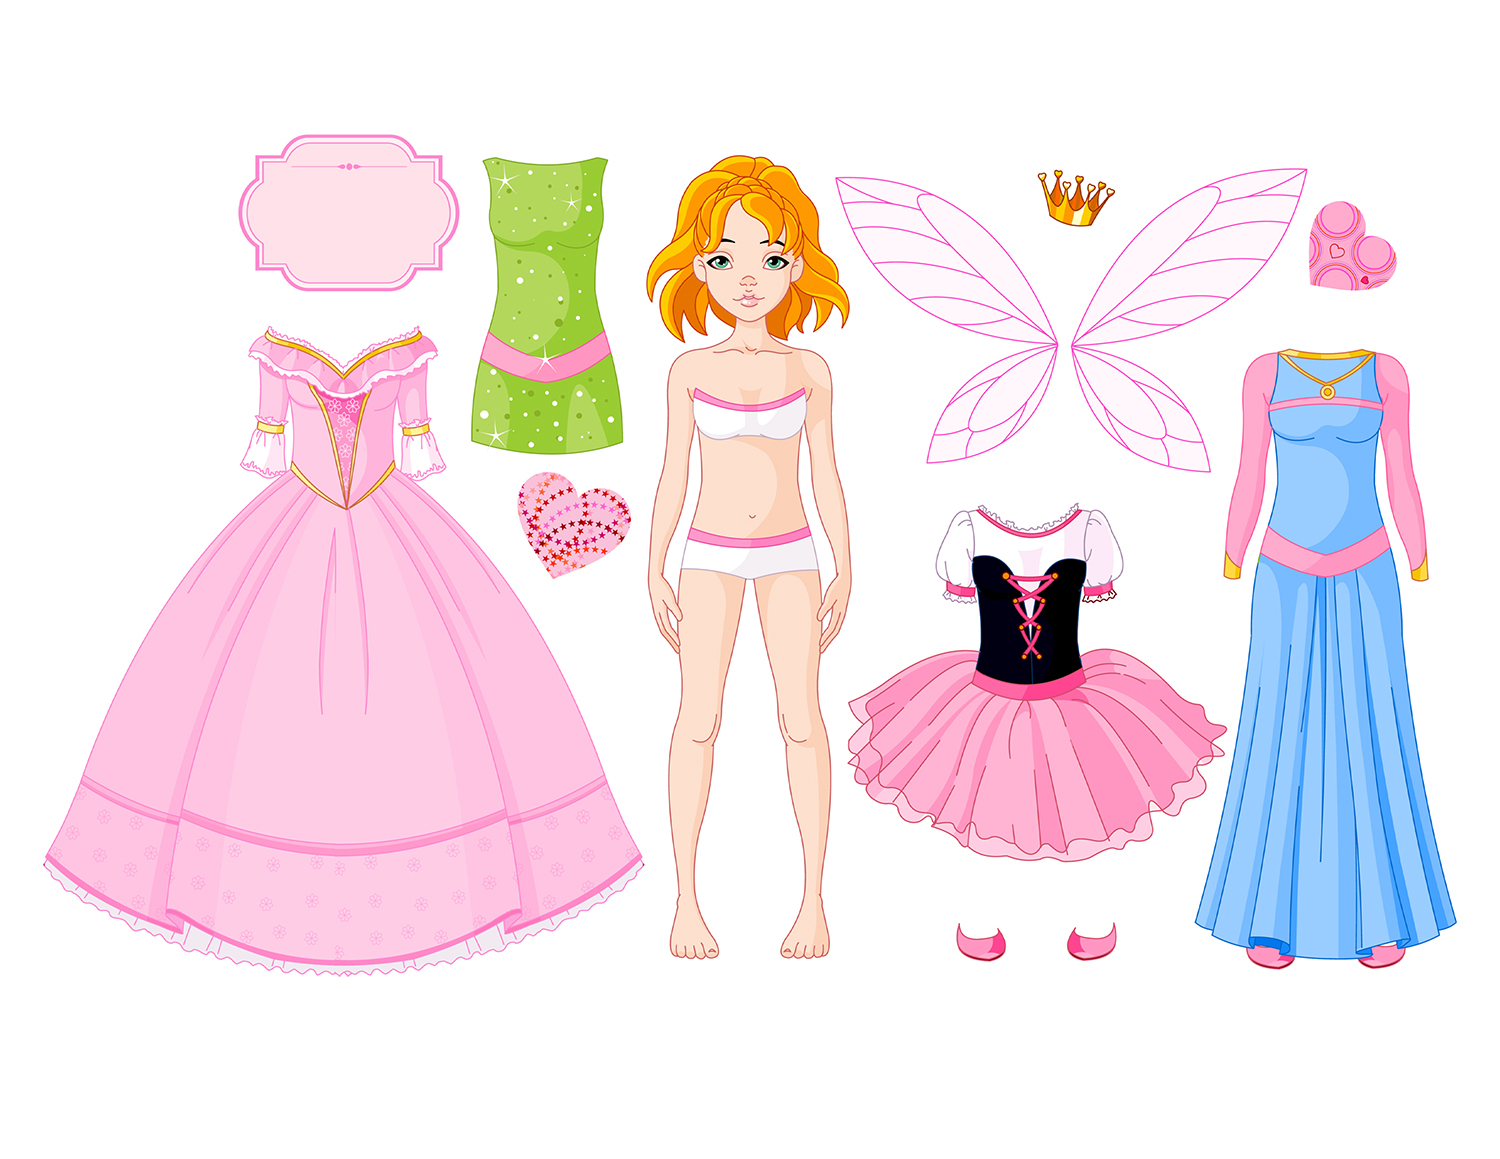 Paper Doll Girl with different princess dresses